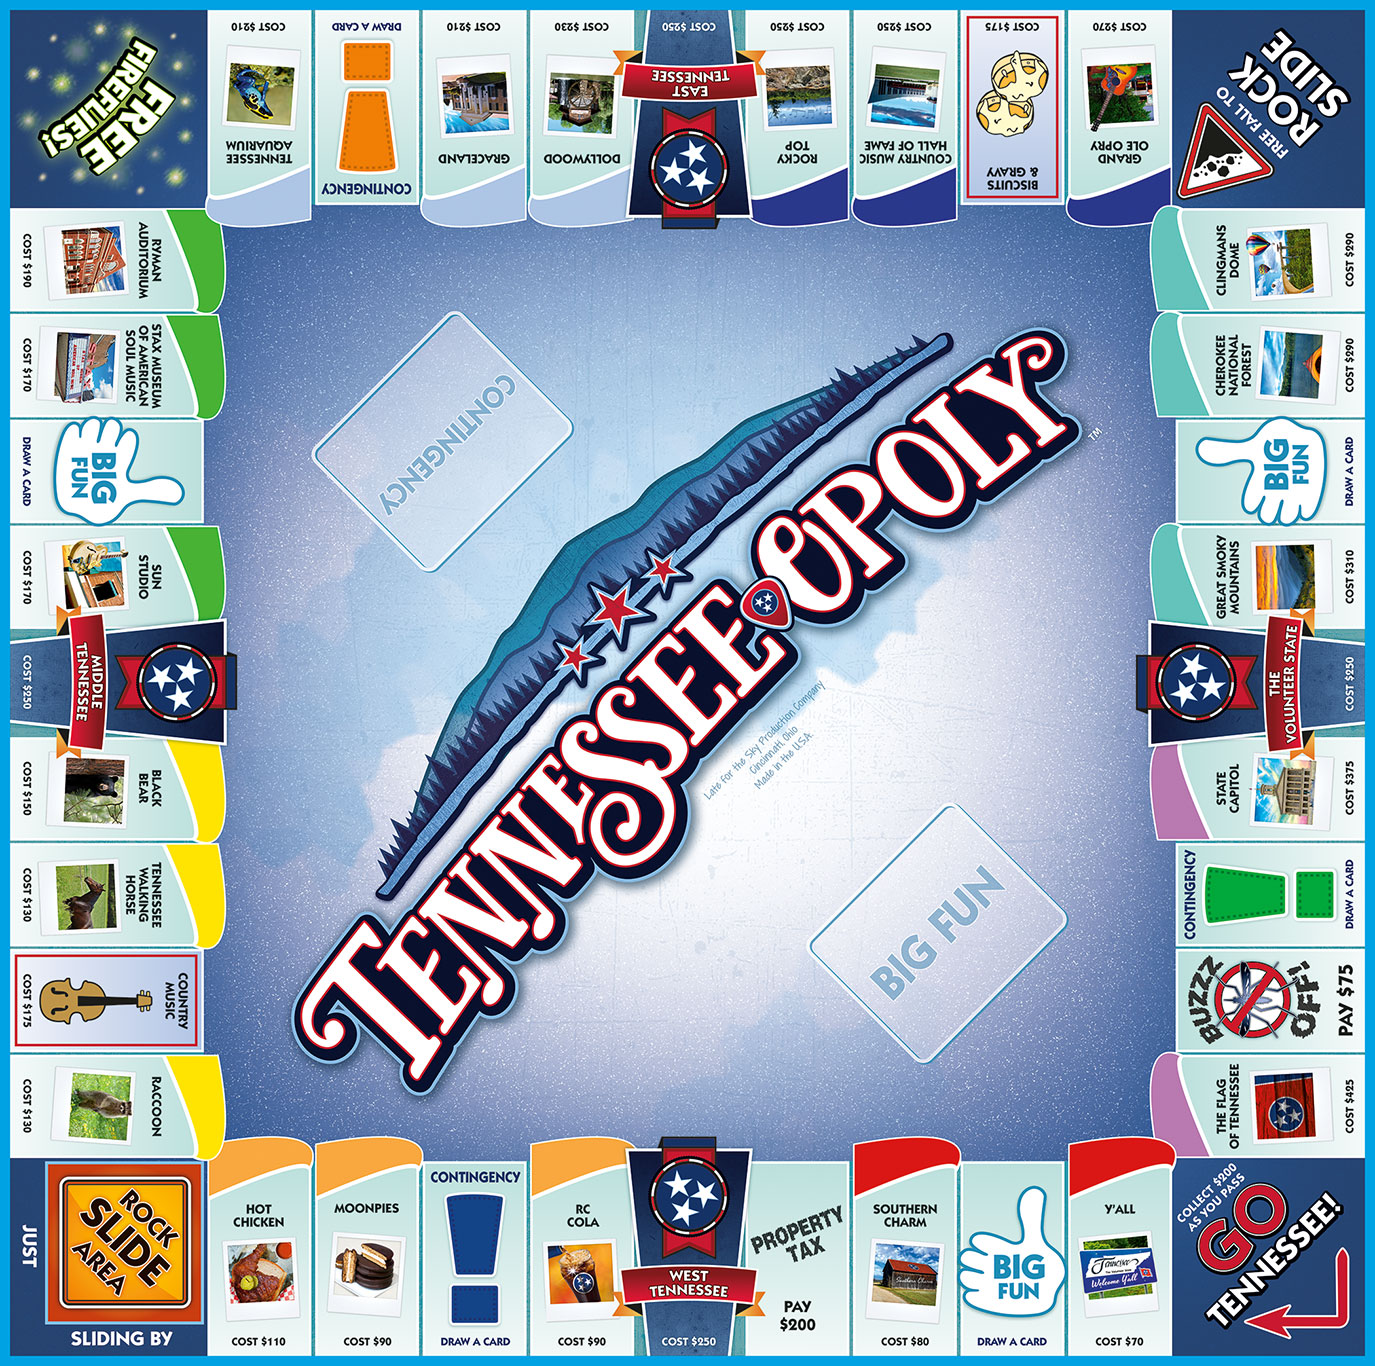 TENNESSEE-OPOLY Board Game